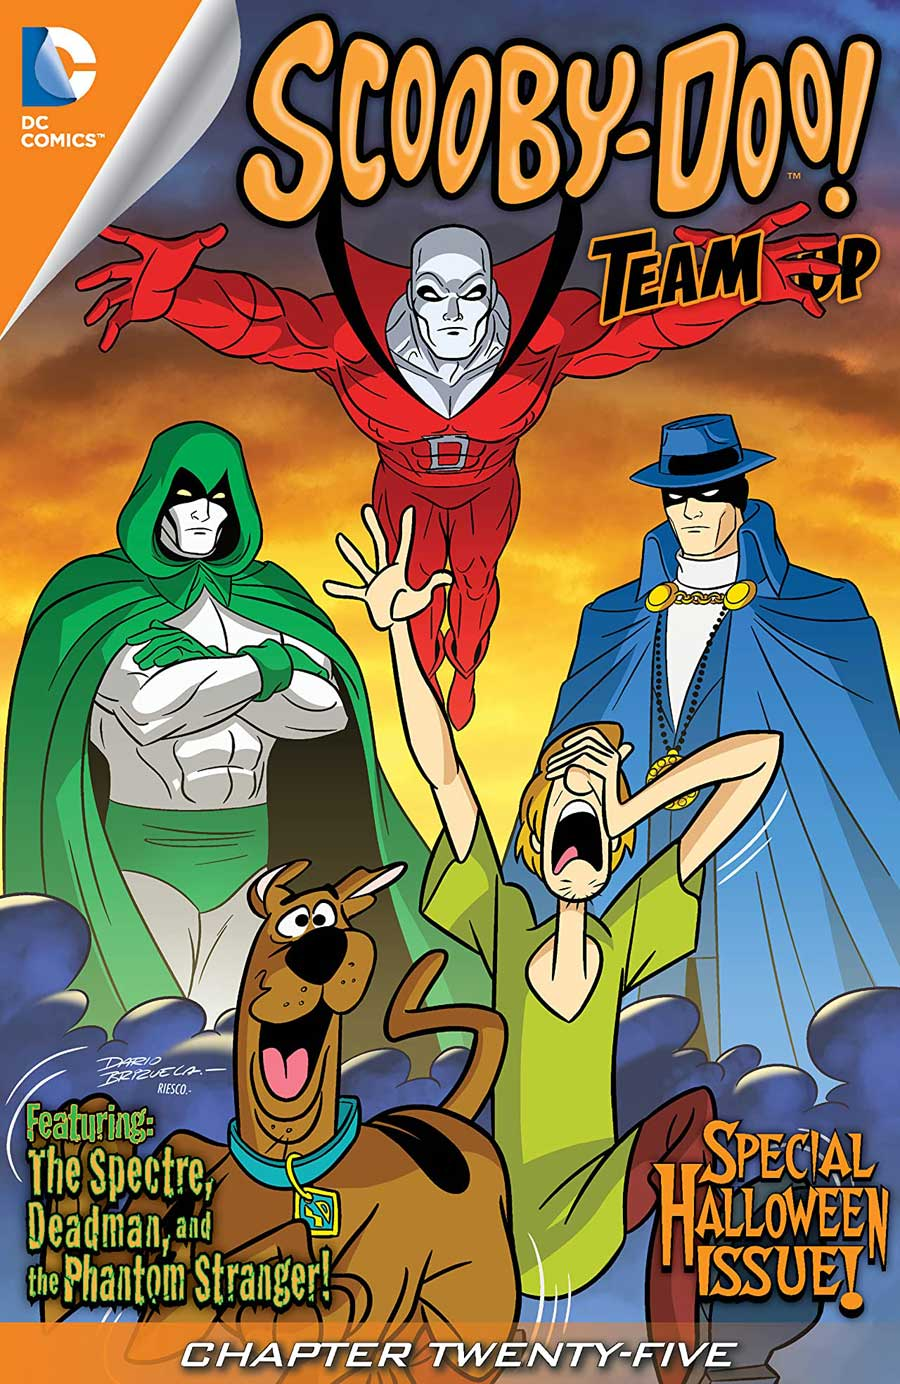 SCOOBY-DOO TEAM-UP #25-26 digitally -- #13 hardcopy